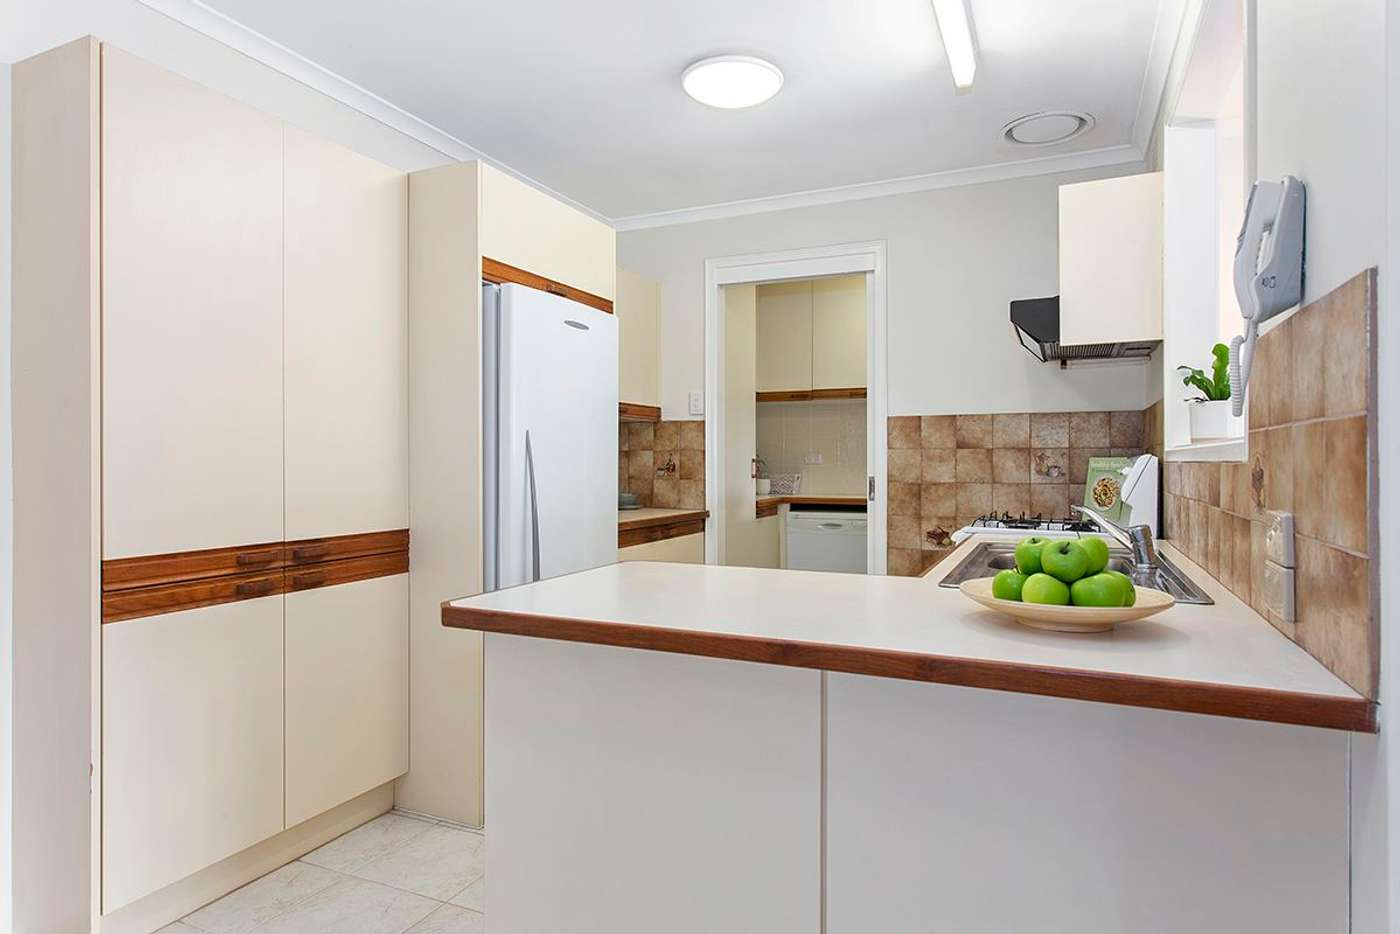 Sixth view of Homely house listing, 17 Glengariff Drive, Mulgrave VIC 3170